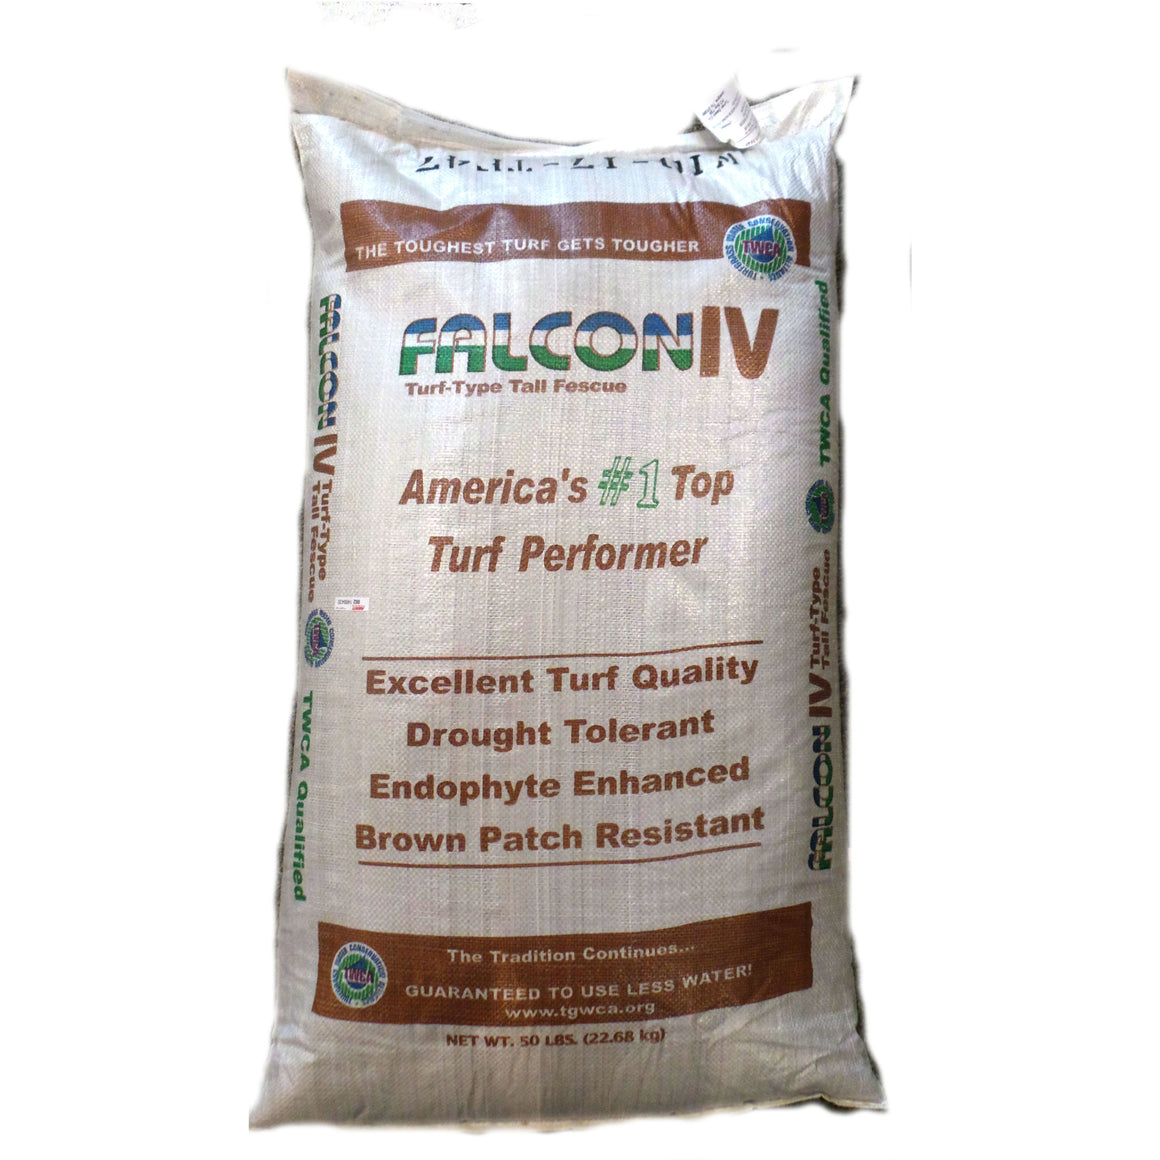 Falcon IV Turf Type Tall Fescue Grass Seed - 50 lbs. - Seed World